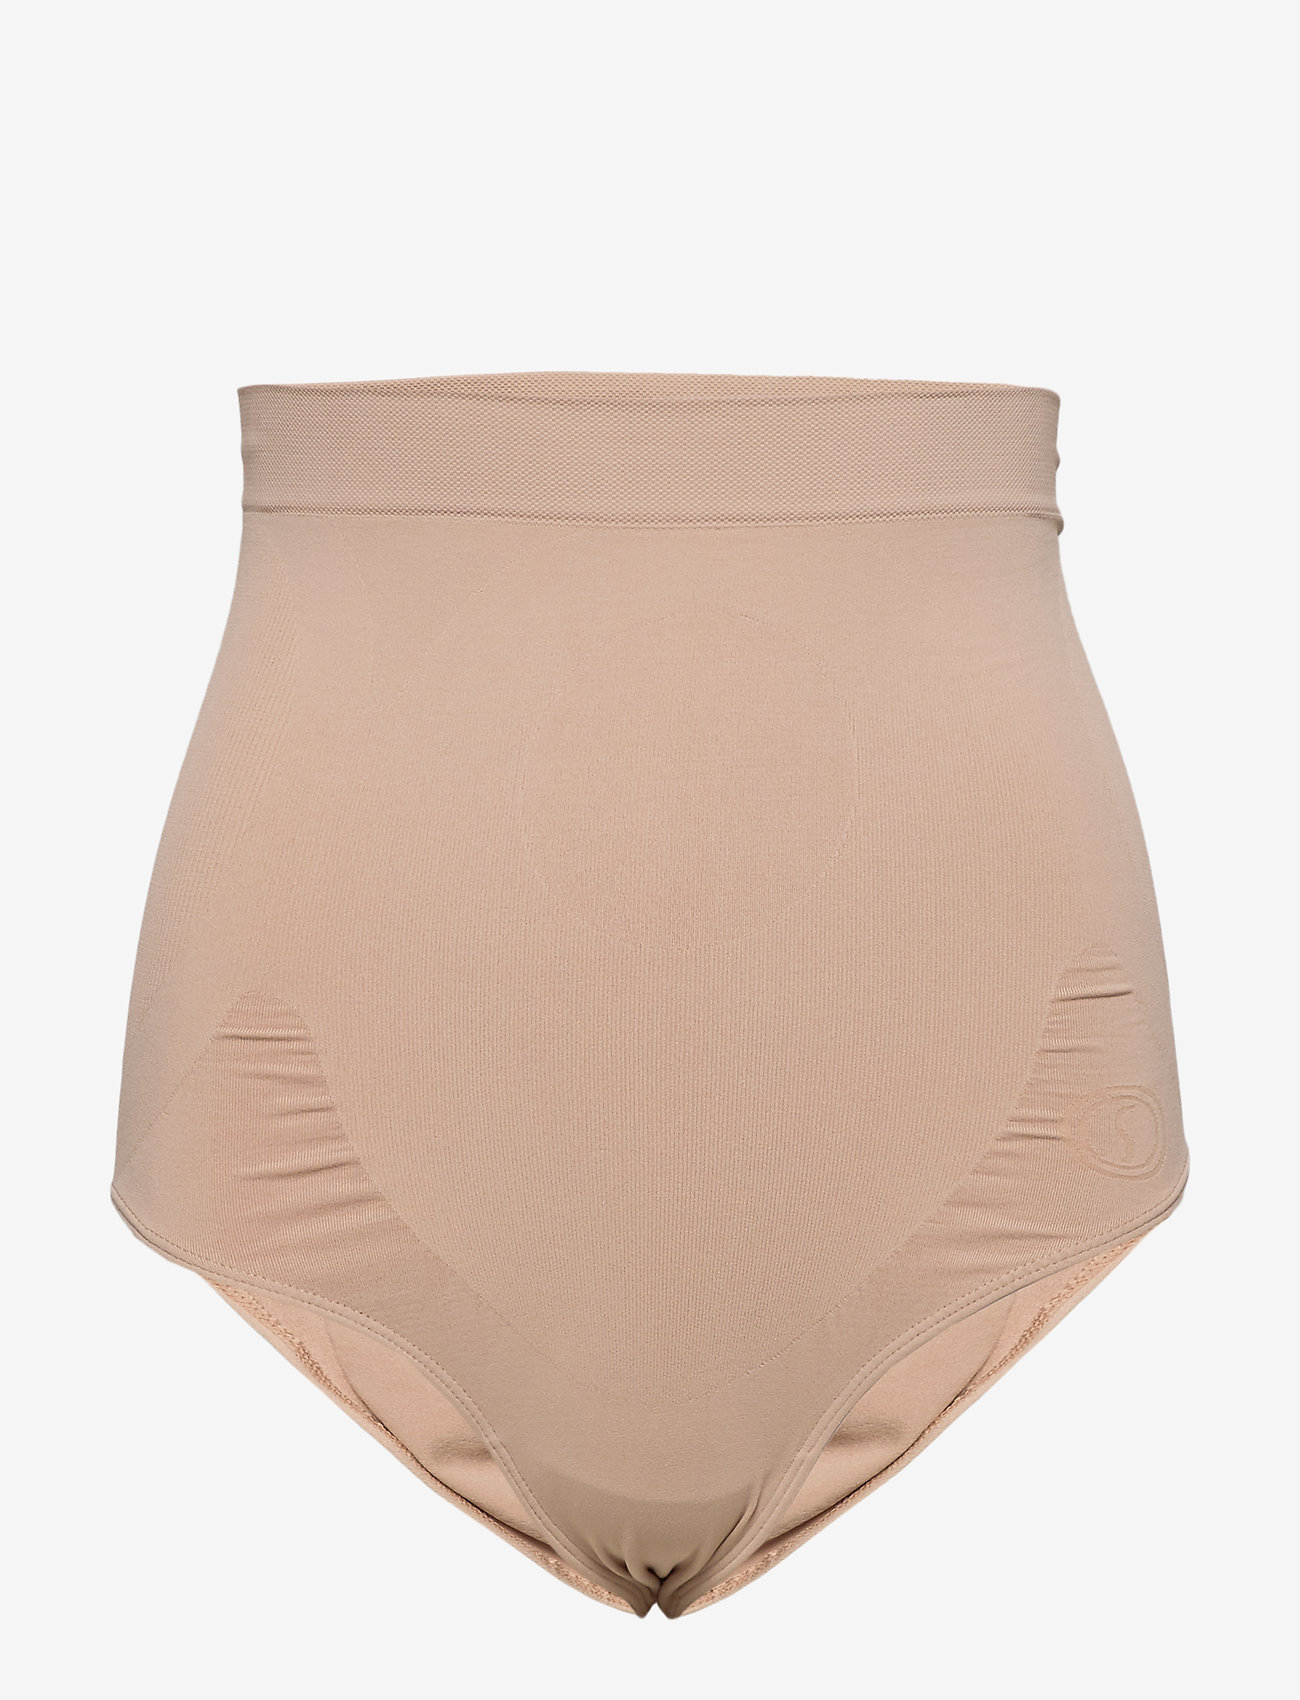 Decoy - Shapewear tai high waist - bottoms - nude - 0